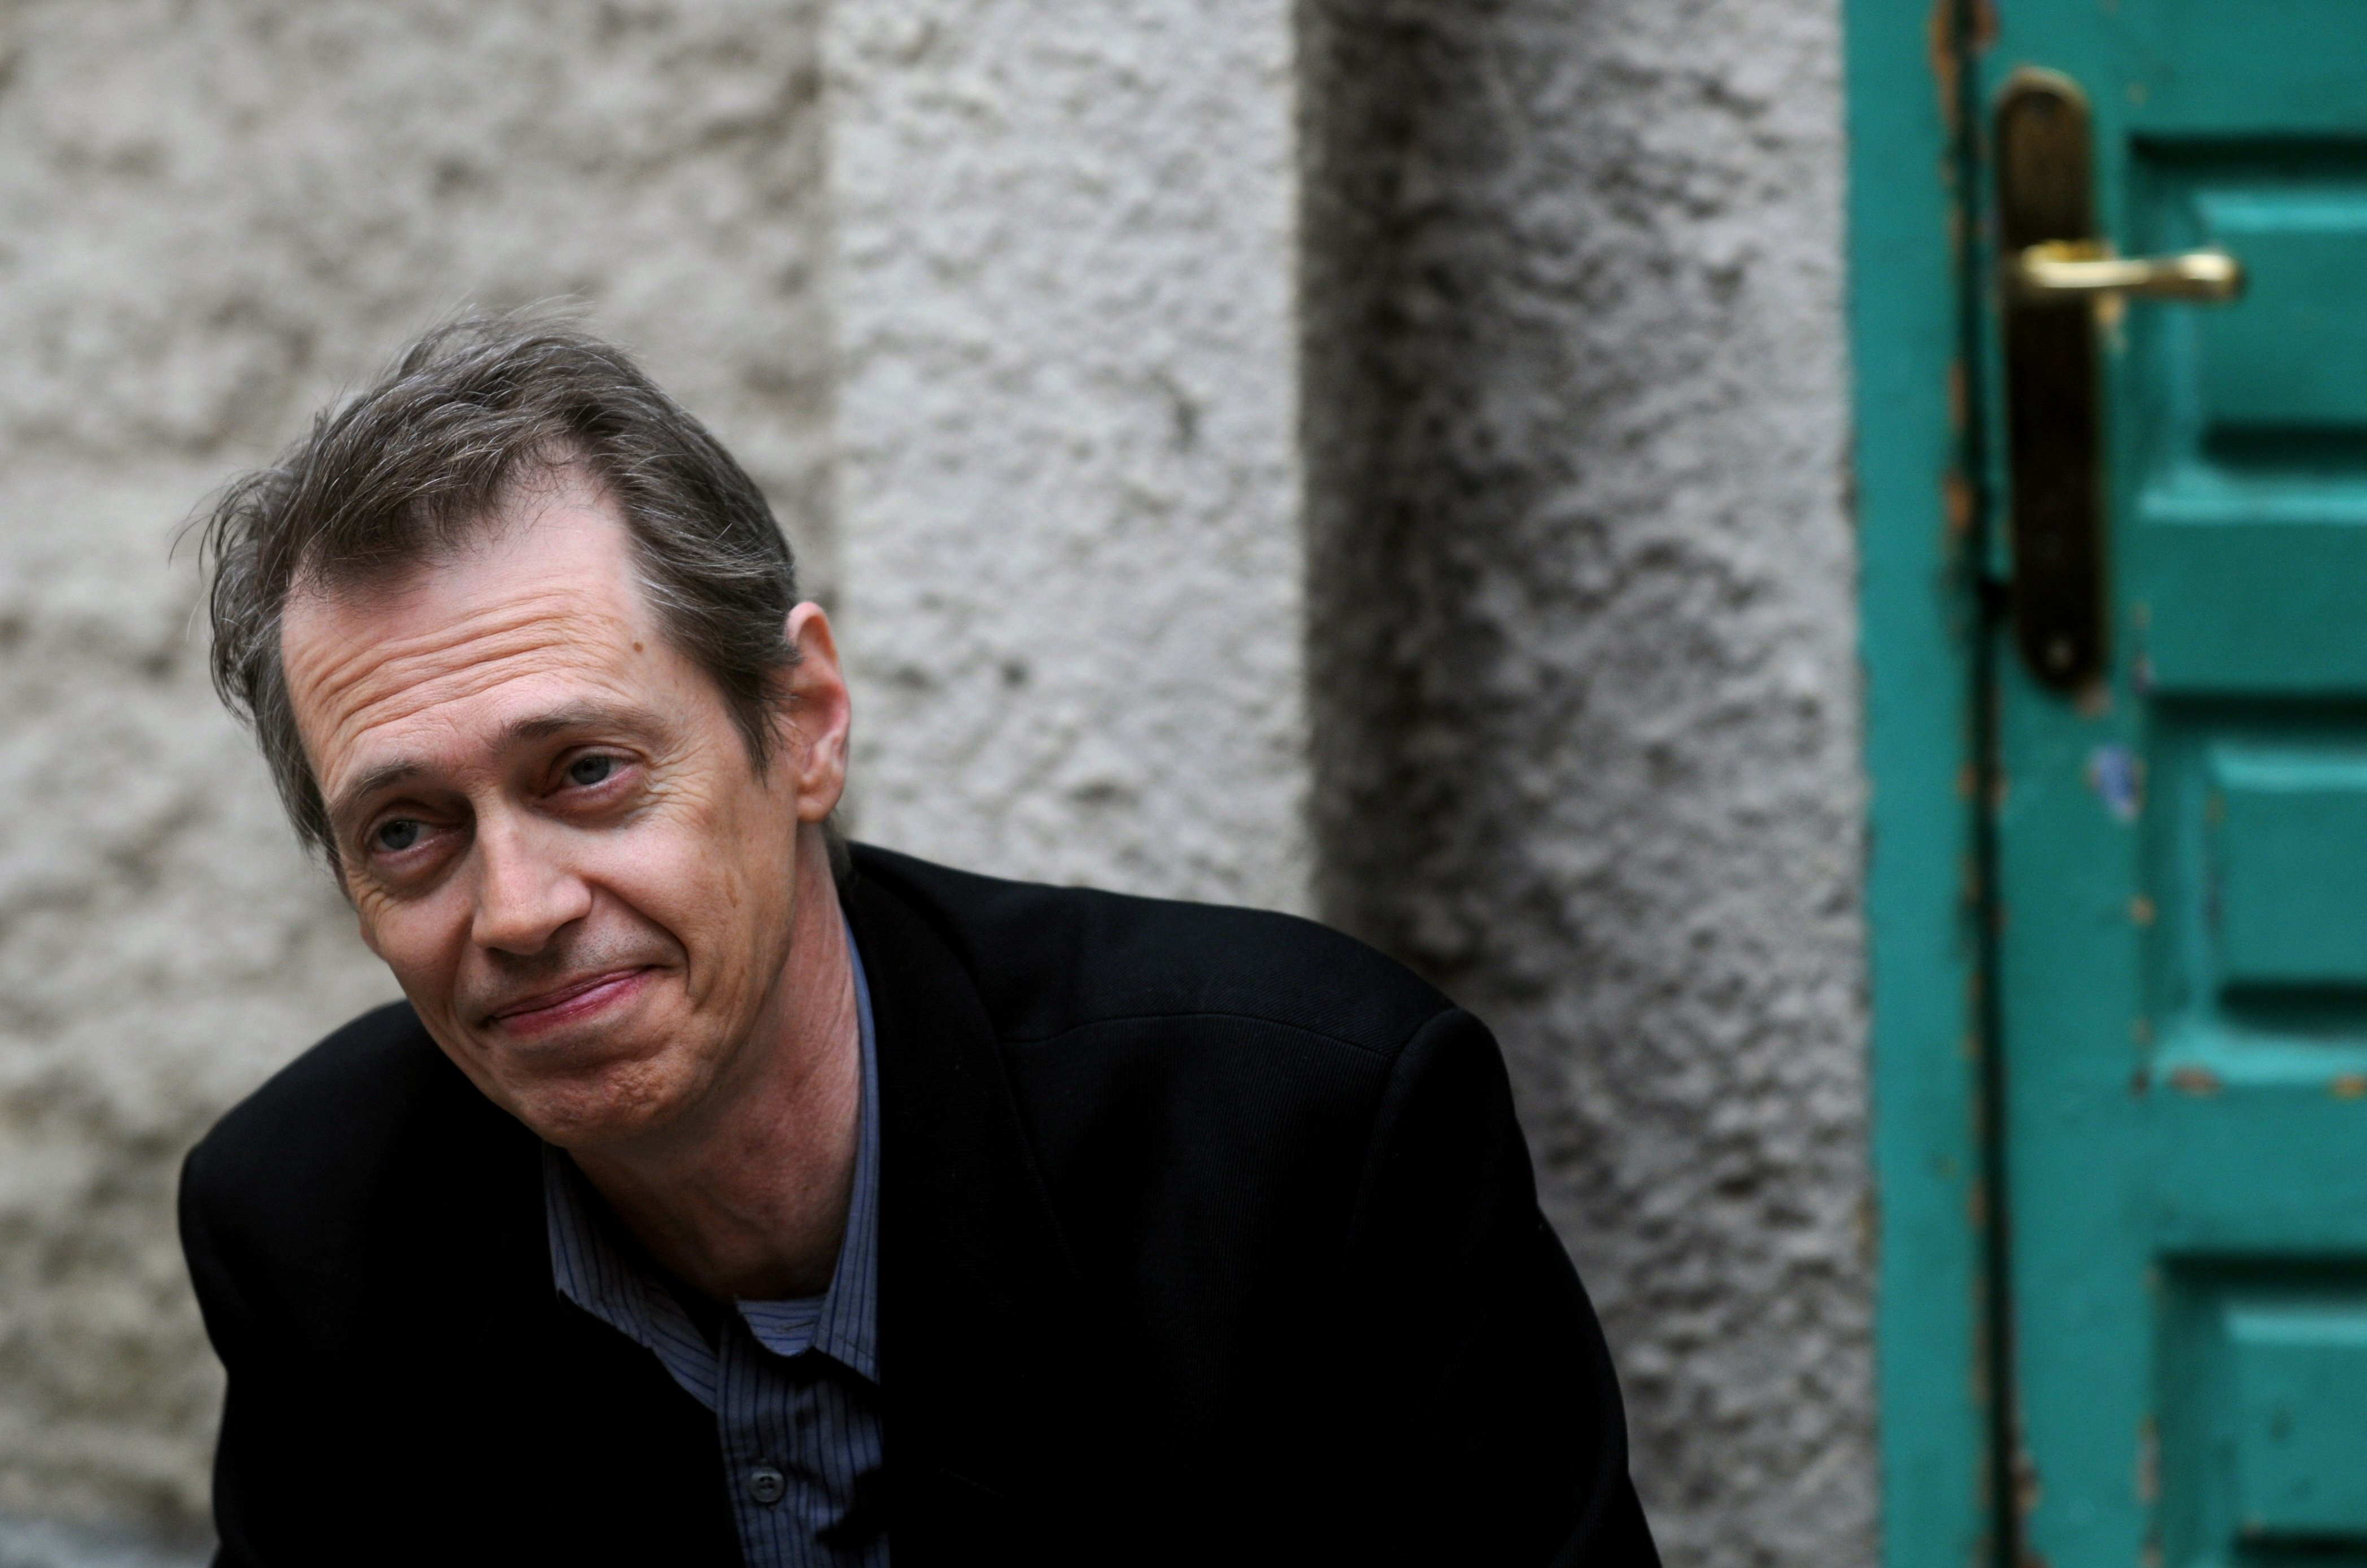 Steve Buscemi in Rome, Italy to present his new film 'Interview' in Rome, Italy on March 27, 2008 | Photo: GettyImages